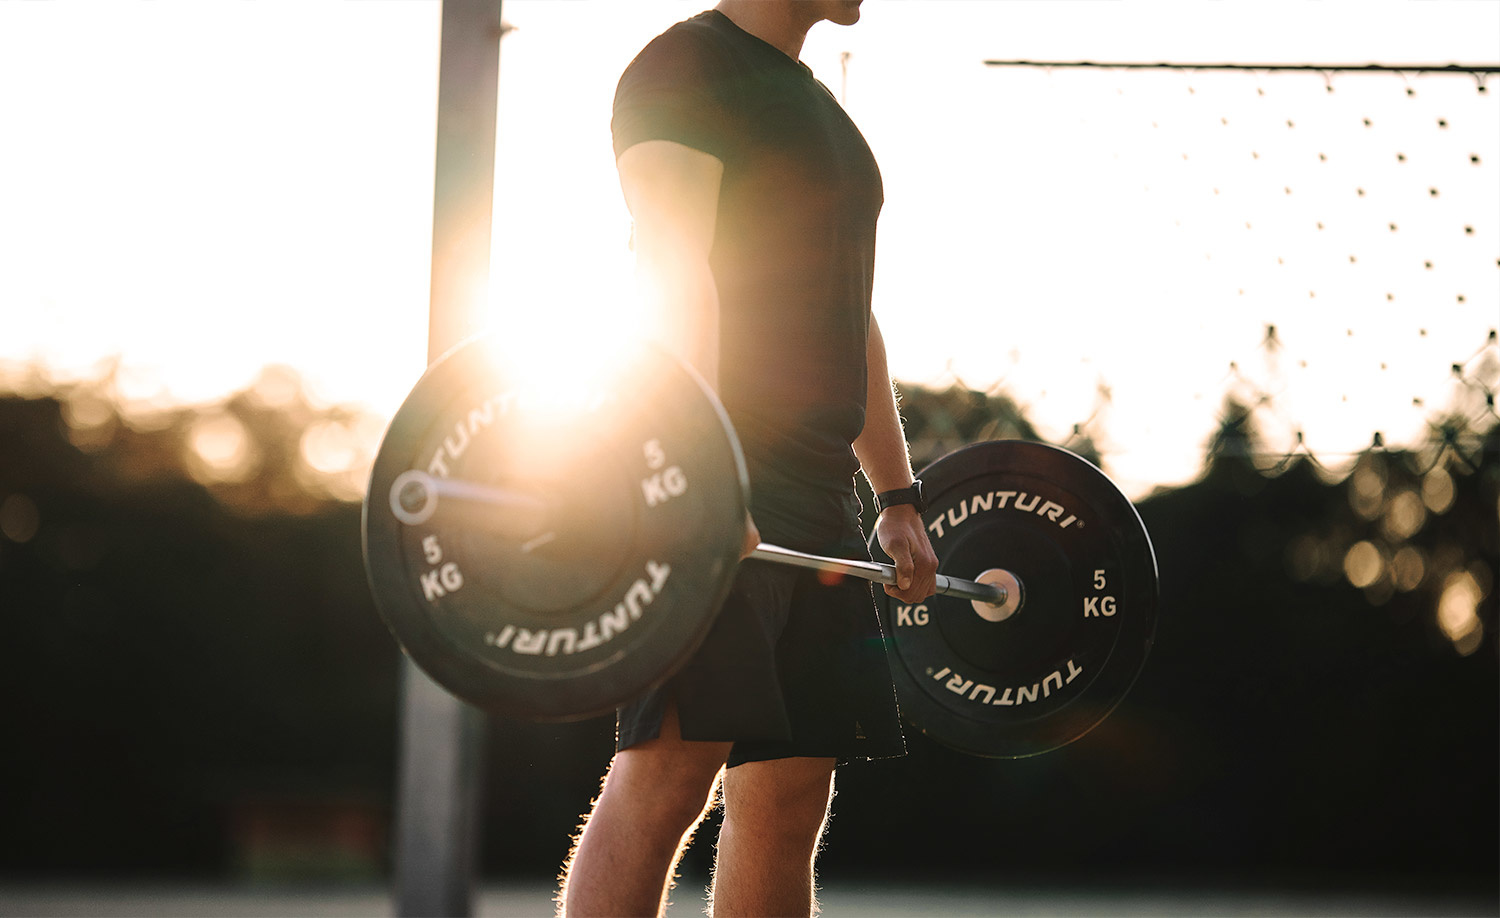 7 tips for a good start with strength training